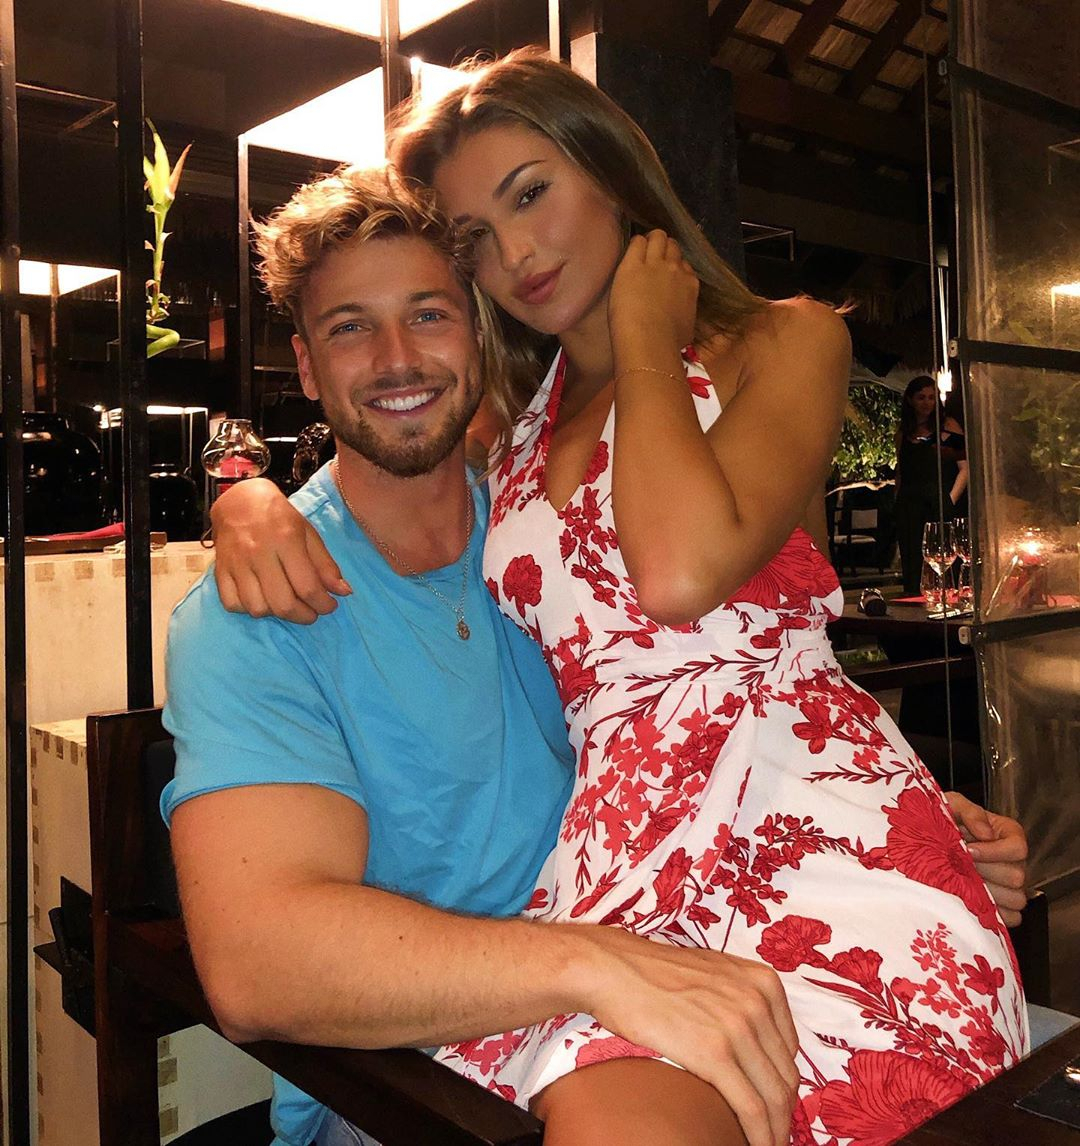 Sam Thompson said he will need therapy to get over Zara McDermott's unfaithfulness